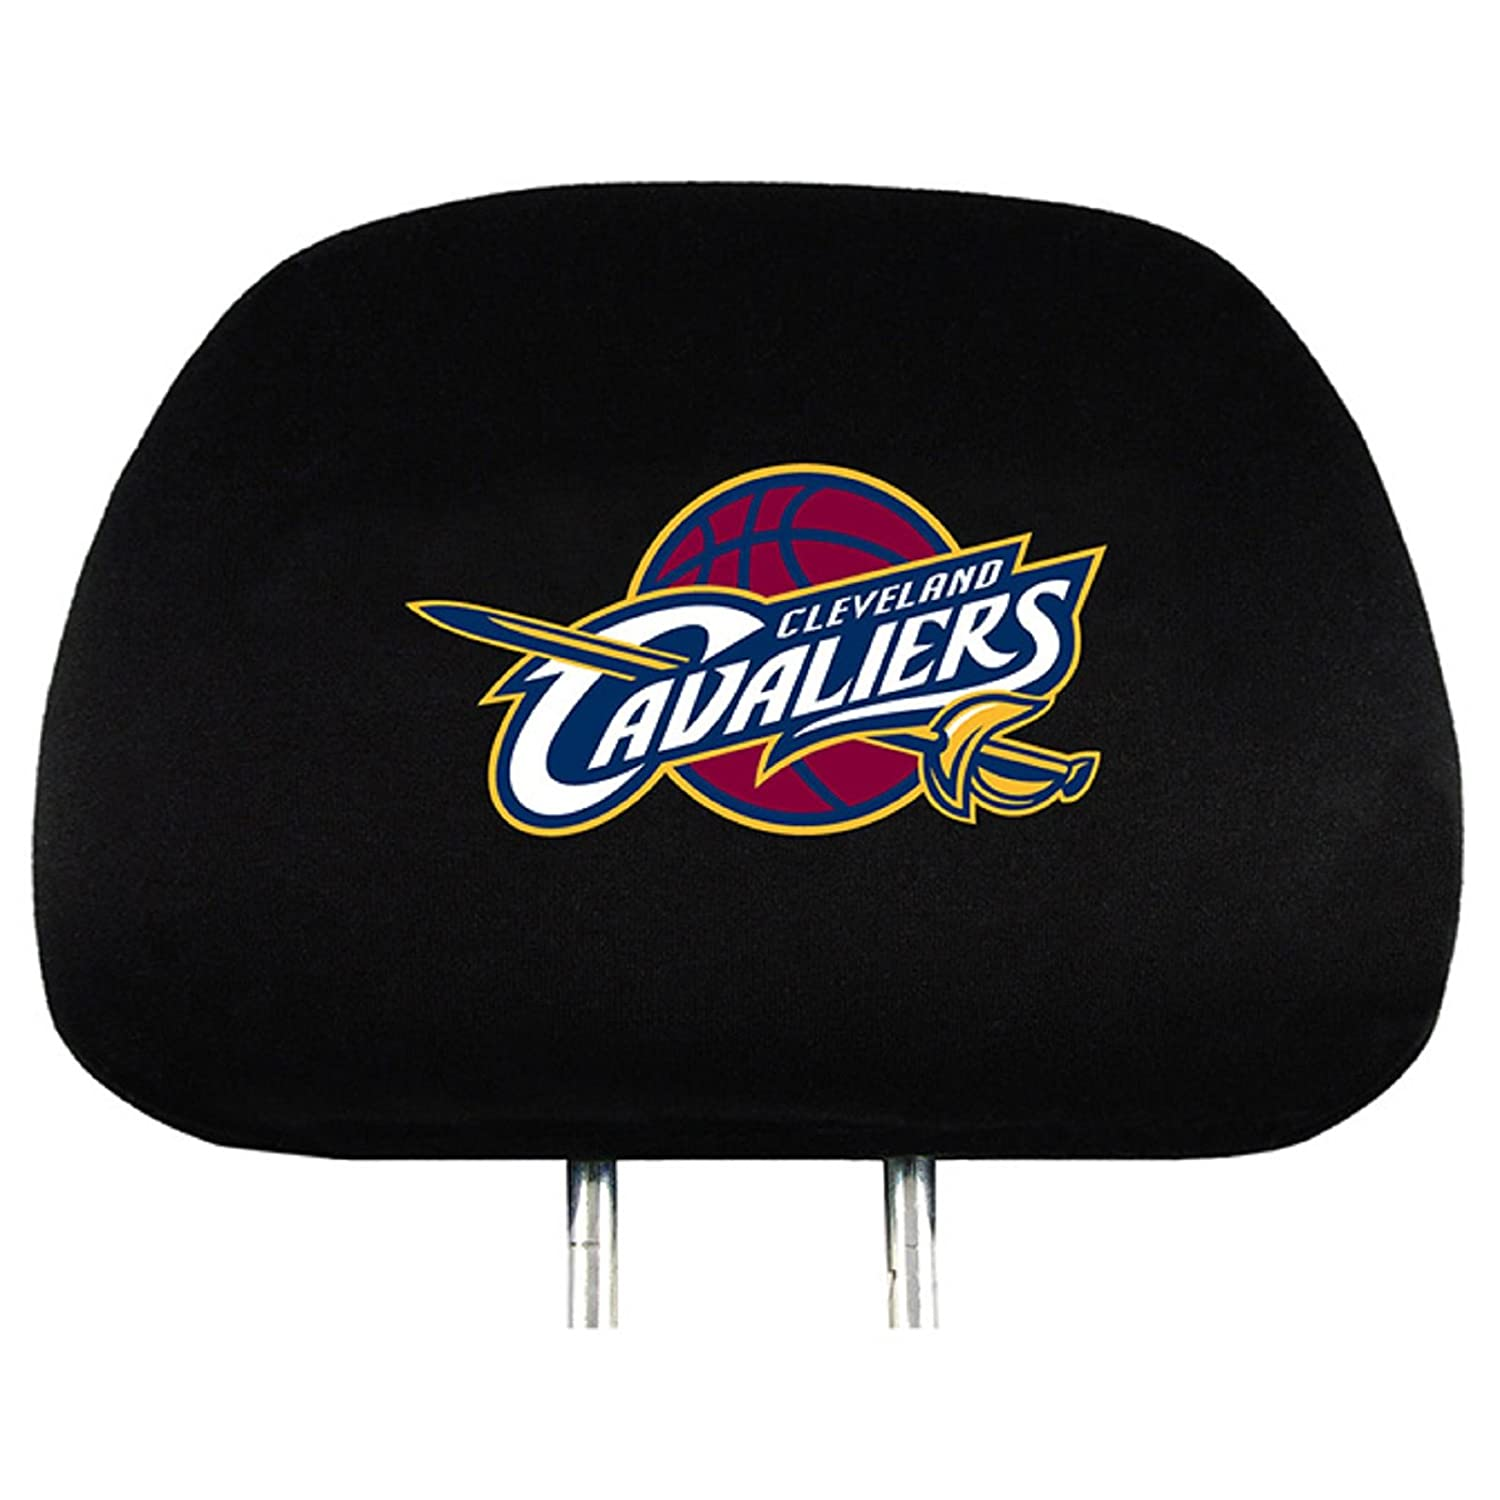 NBA Head Rest Covers ProMark 8162091005